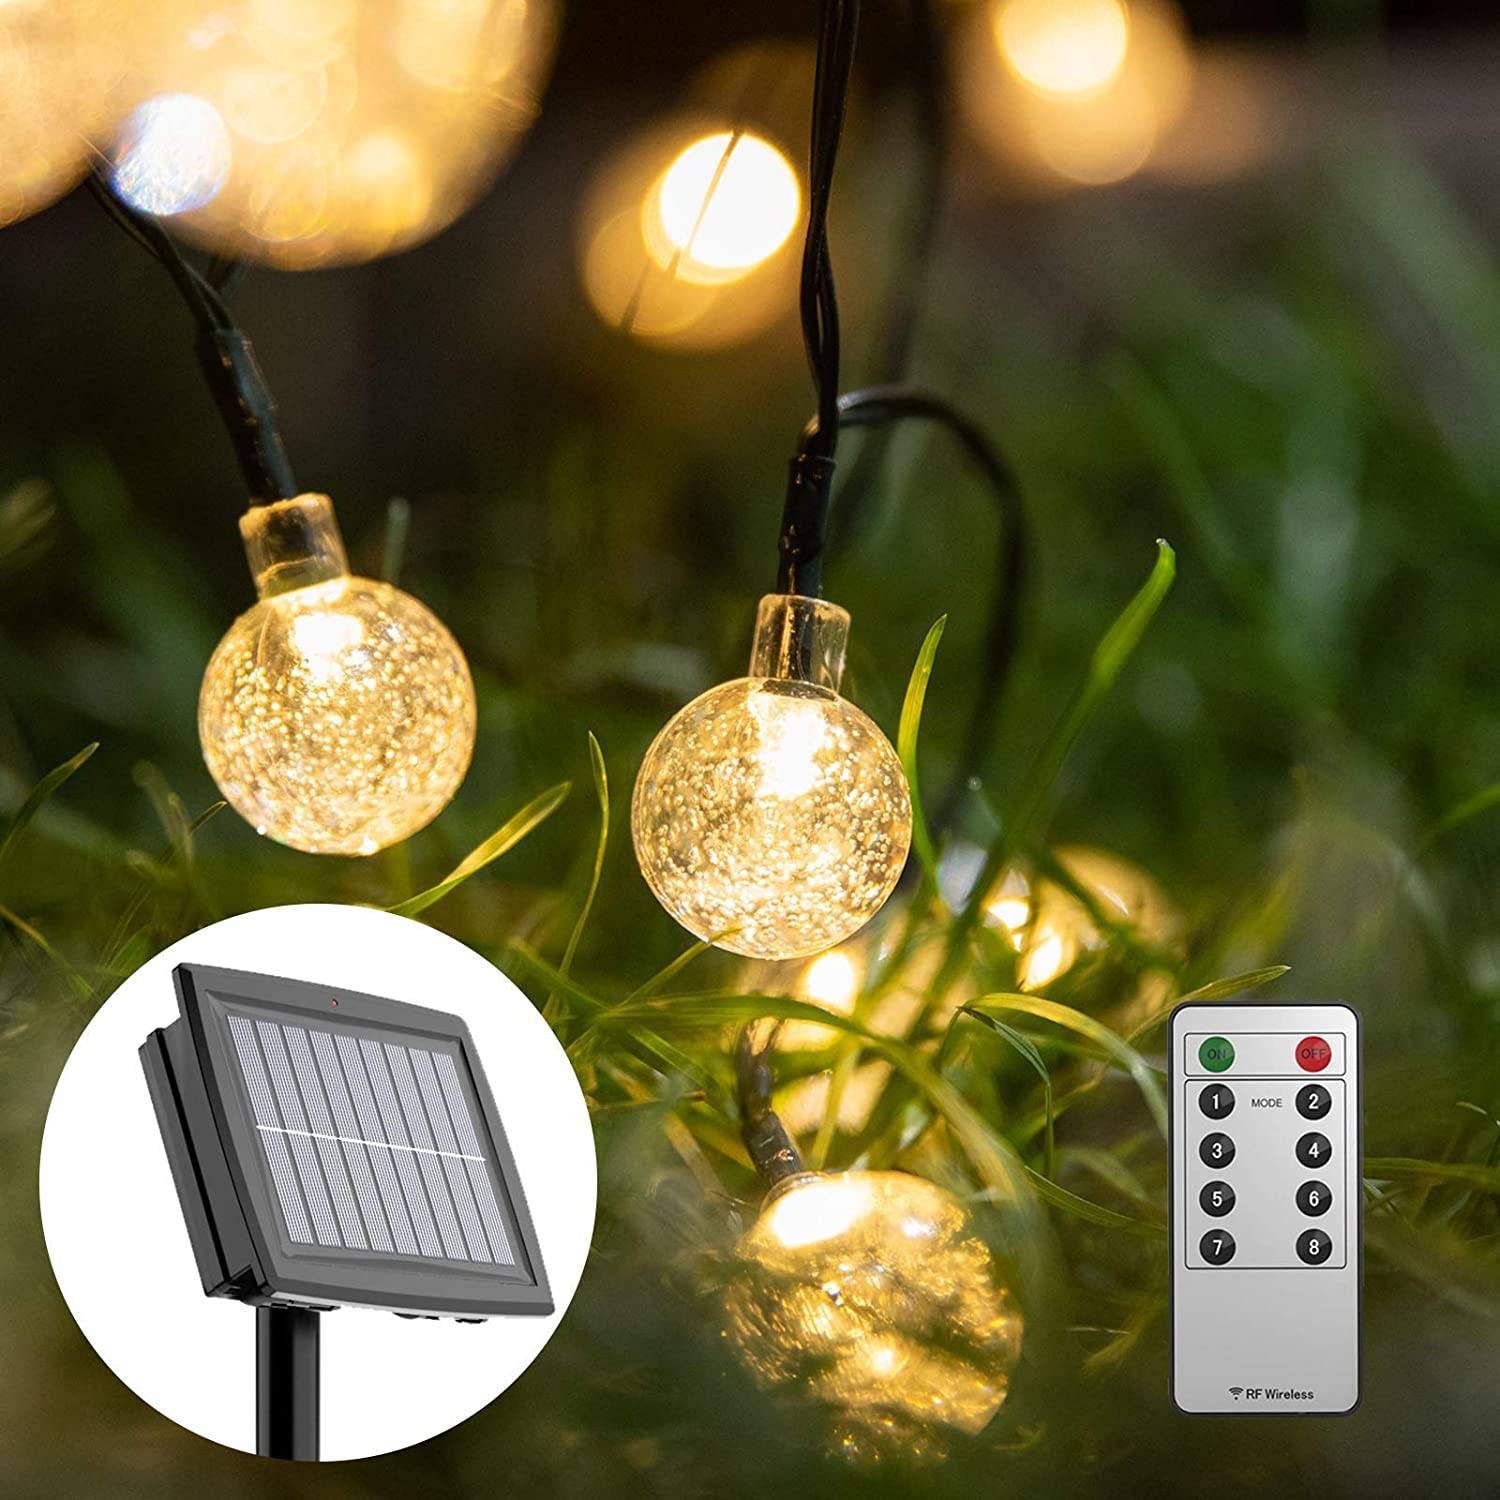 Solar String Lights Outdoor,40ft 88 LEDs Outdoor Globe Bulb Christmas Lights with Remote Powered by Solar and Batteries Waterproof 8 Modes Fairy Lights for Patio, Garden, Gazebo, Yard (Warm White)